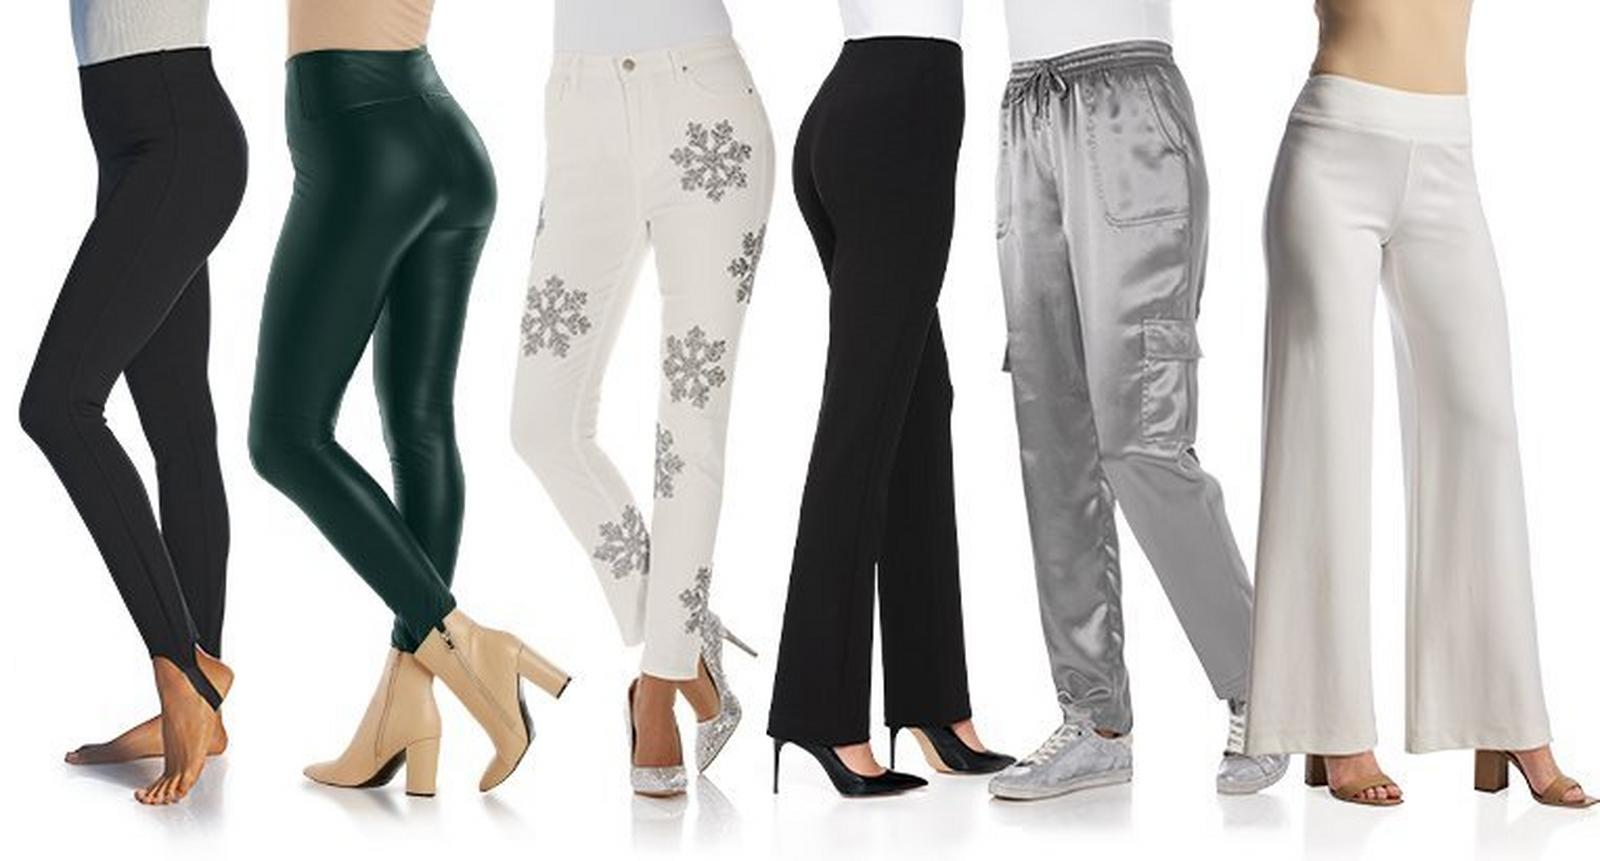 from left to right: black stirrup leggings, dark green faux-leather leggings, white jeans with rhinestone snowflake embellishments, black straight leg pants, silver charmeuse cargo pants, and white palazzo pants.